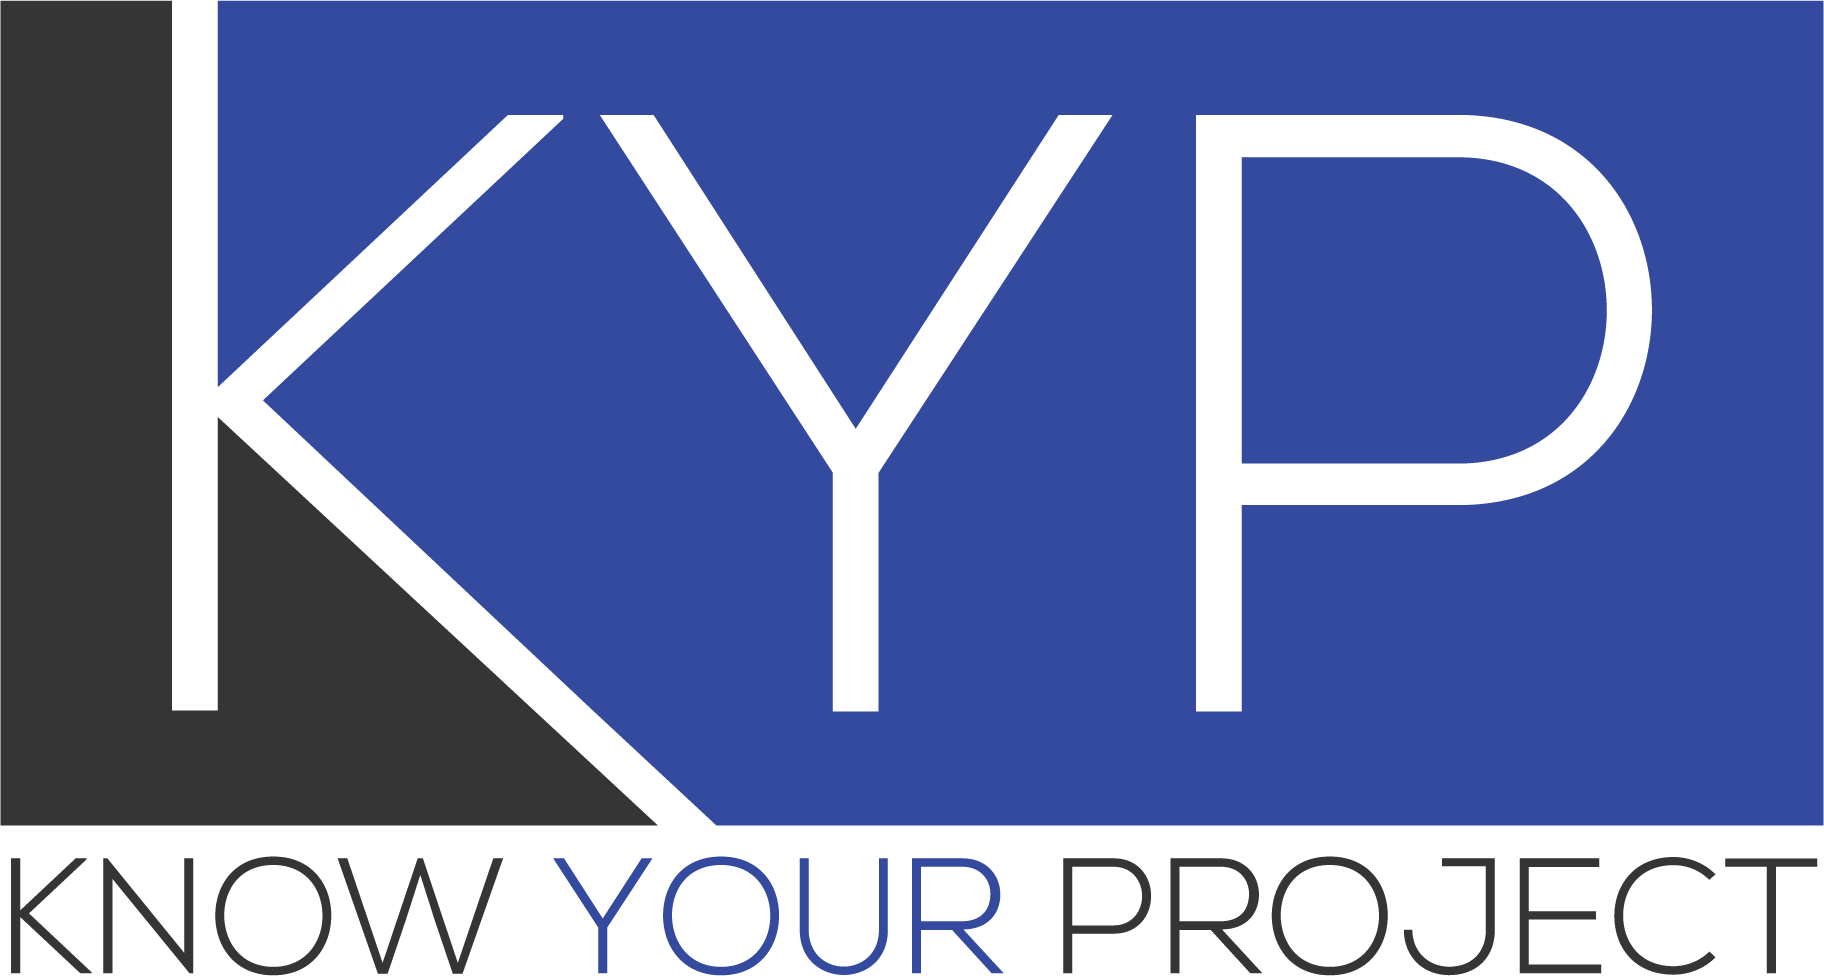 Know Your Project